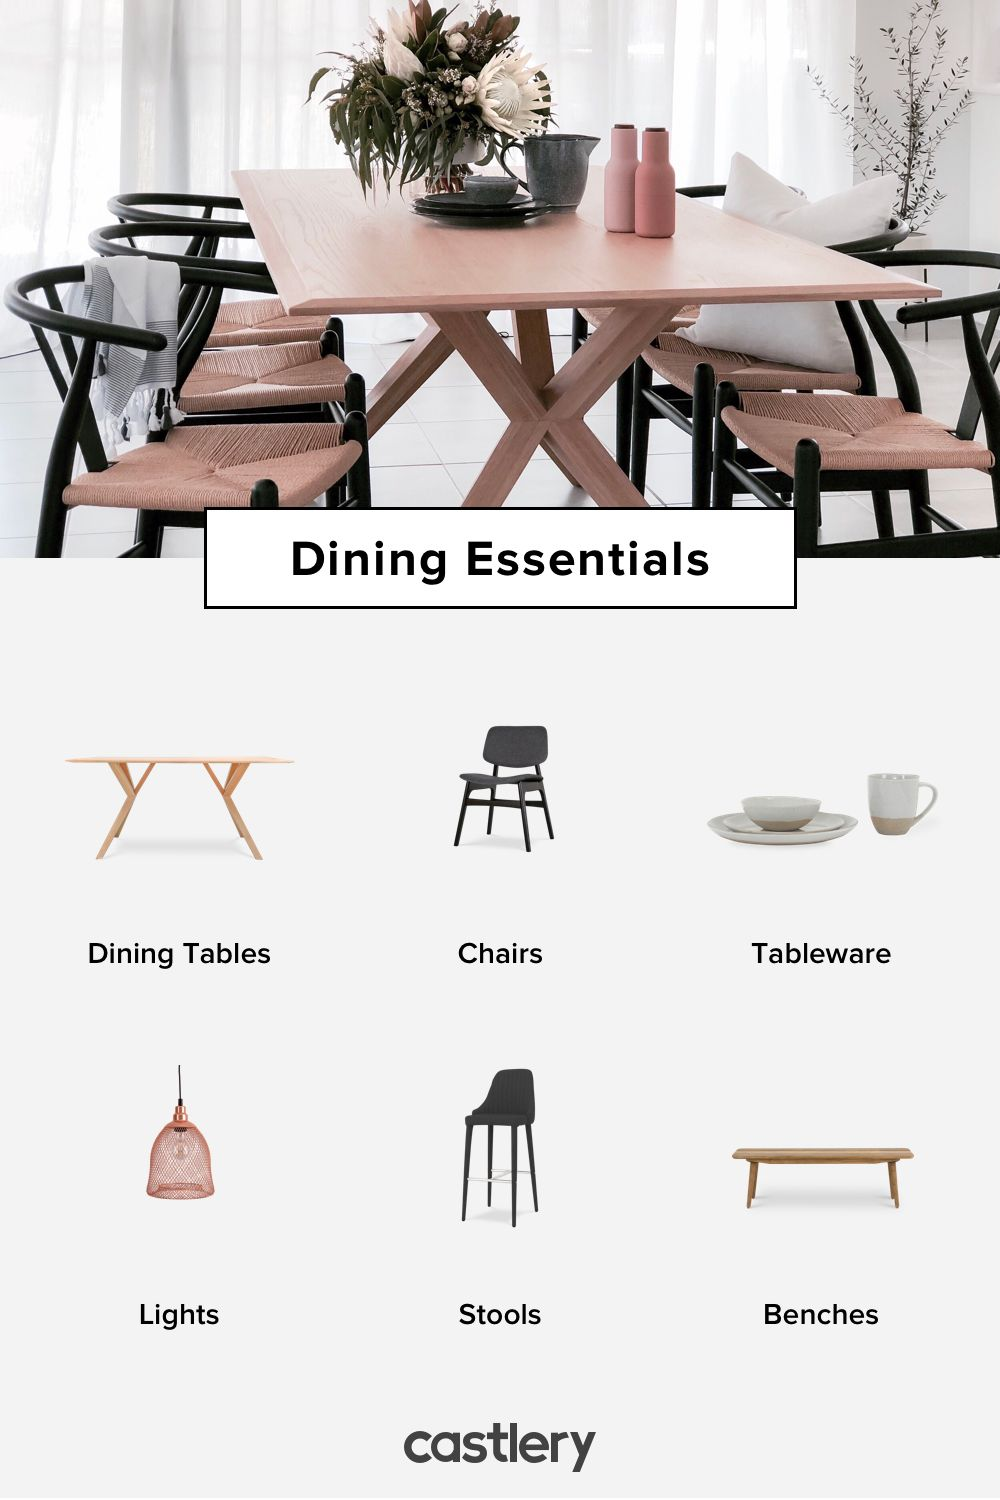 Discover The Dining Range From Castlery That Provides Everything